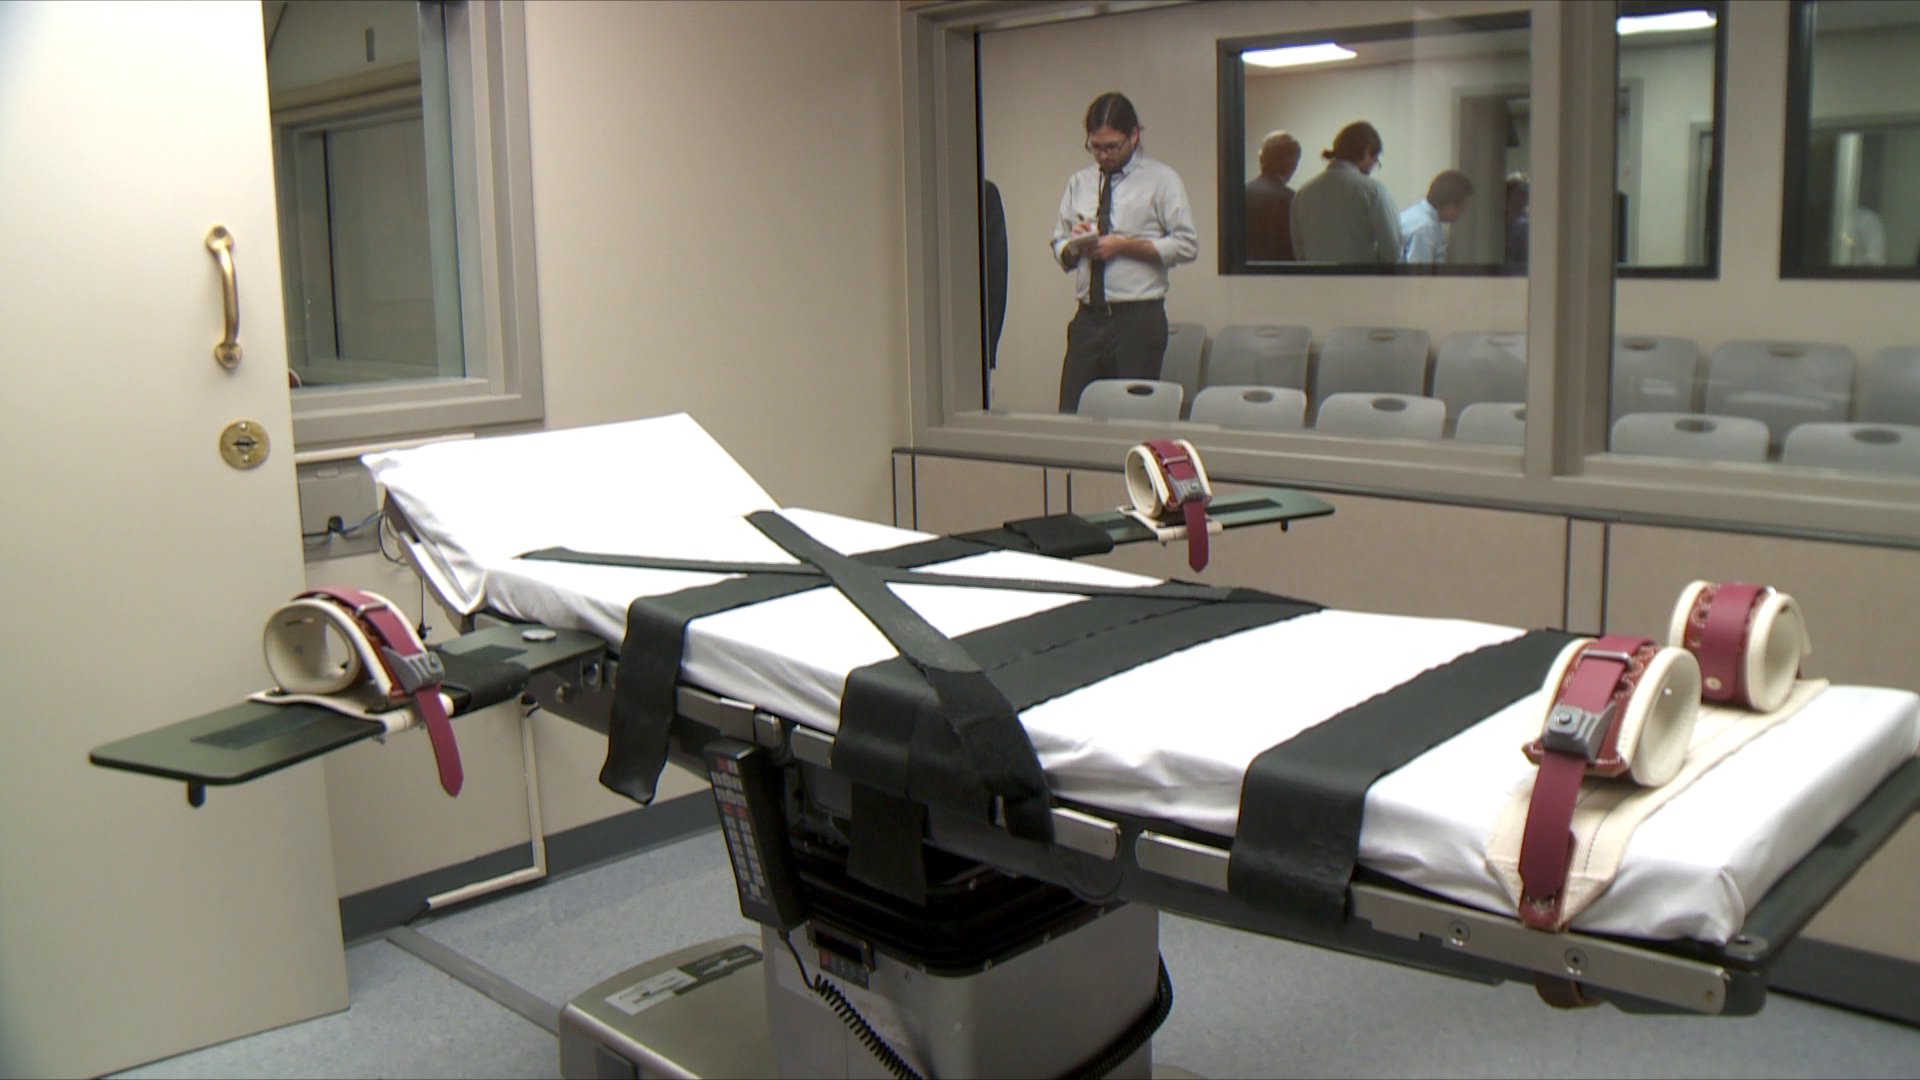 Lethal injection for executions